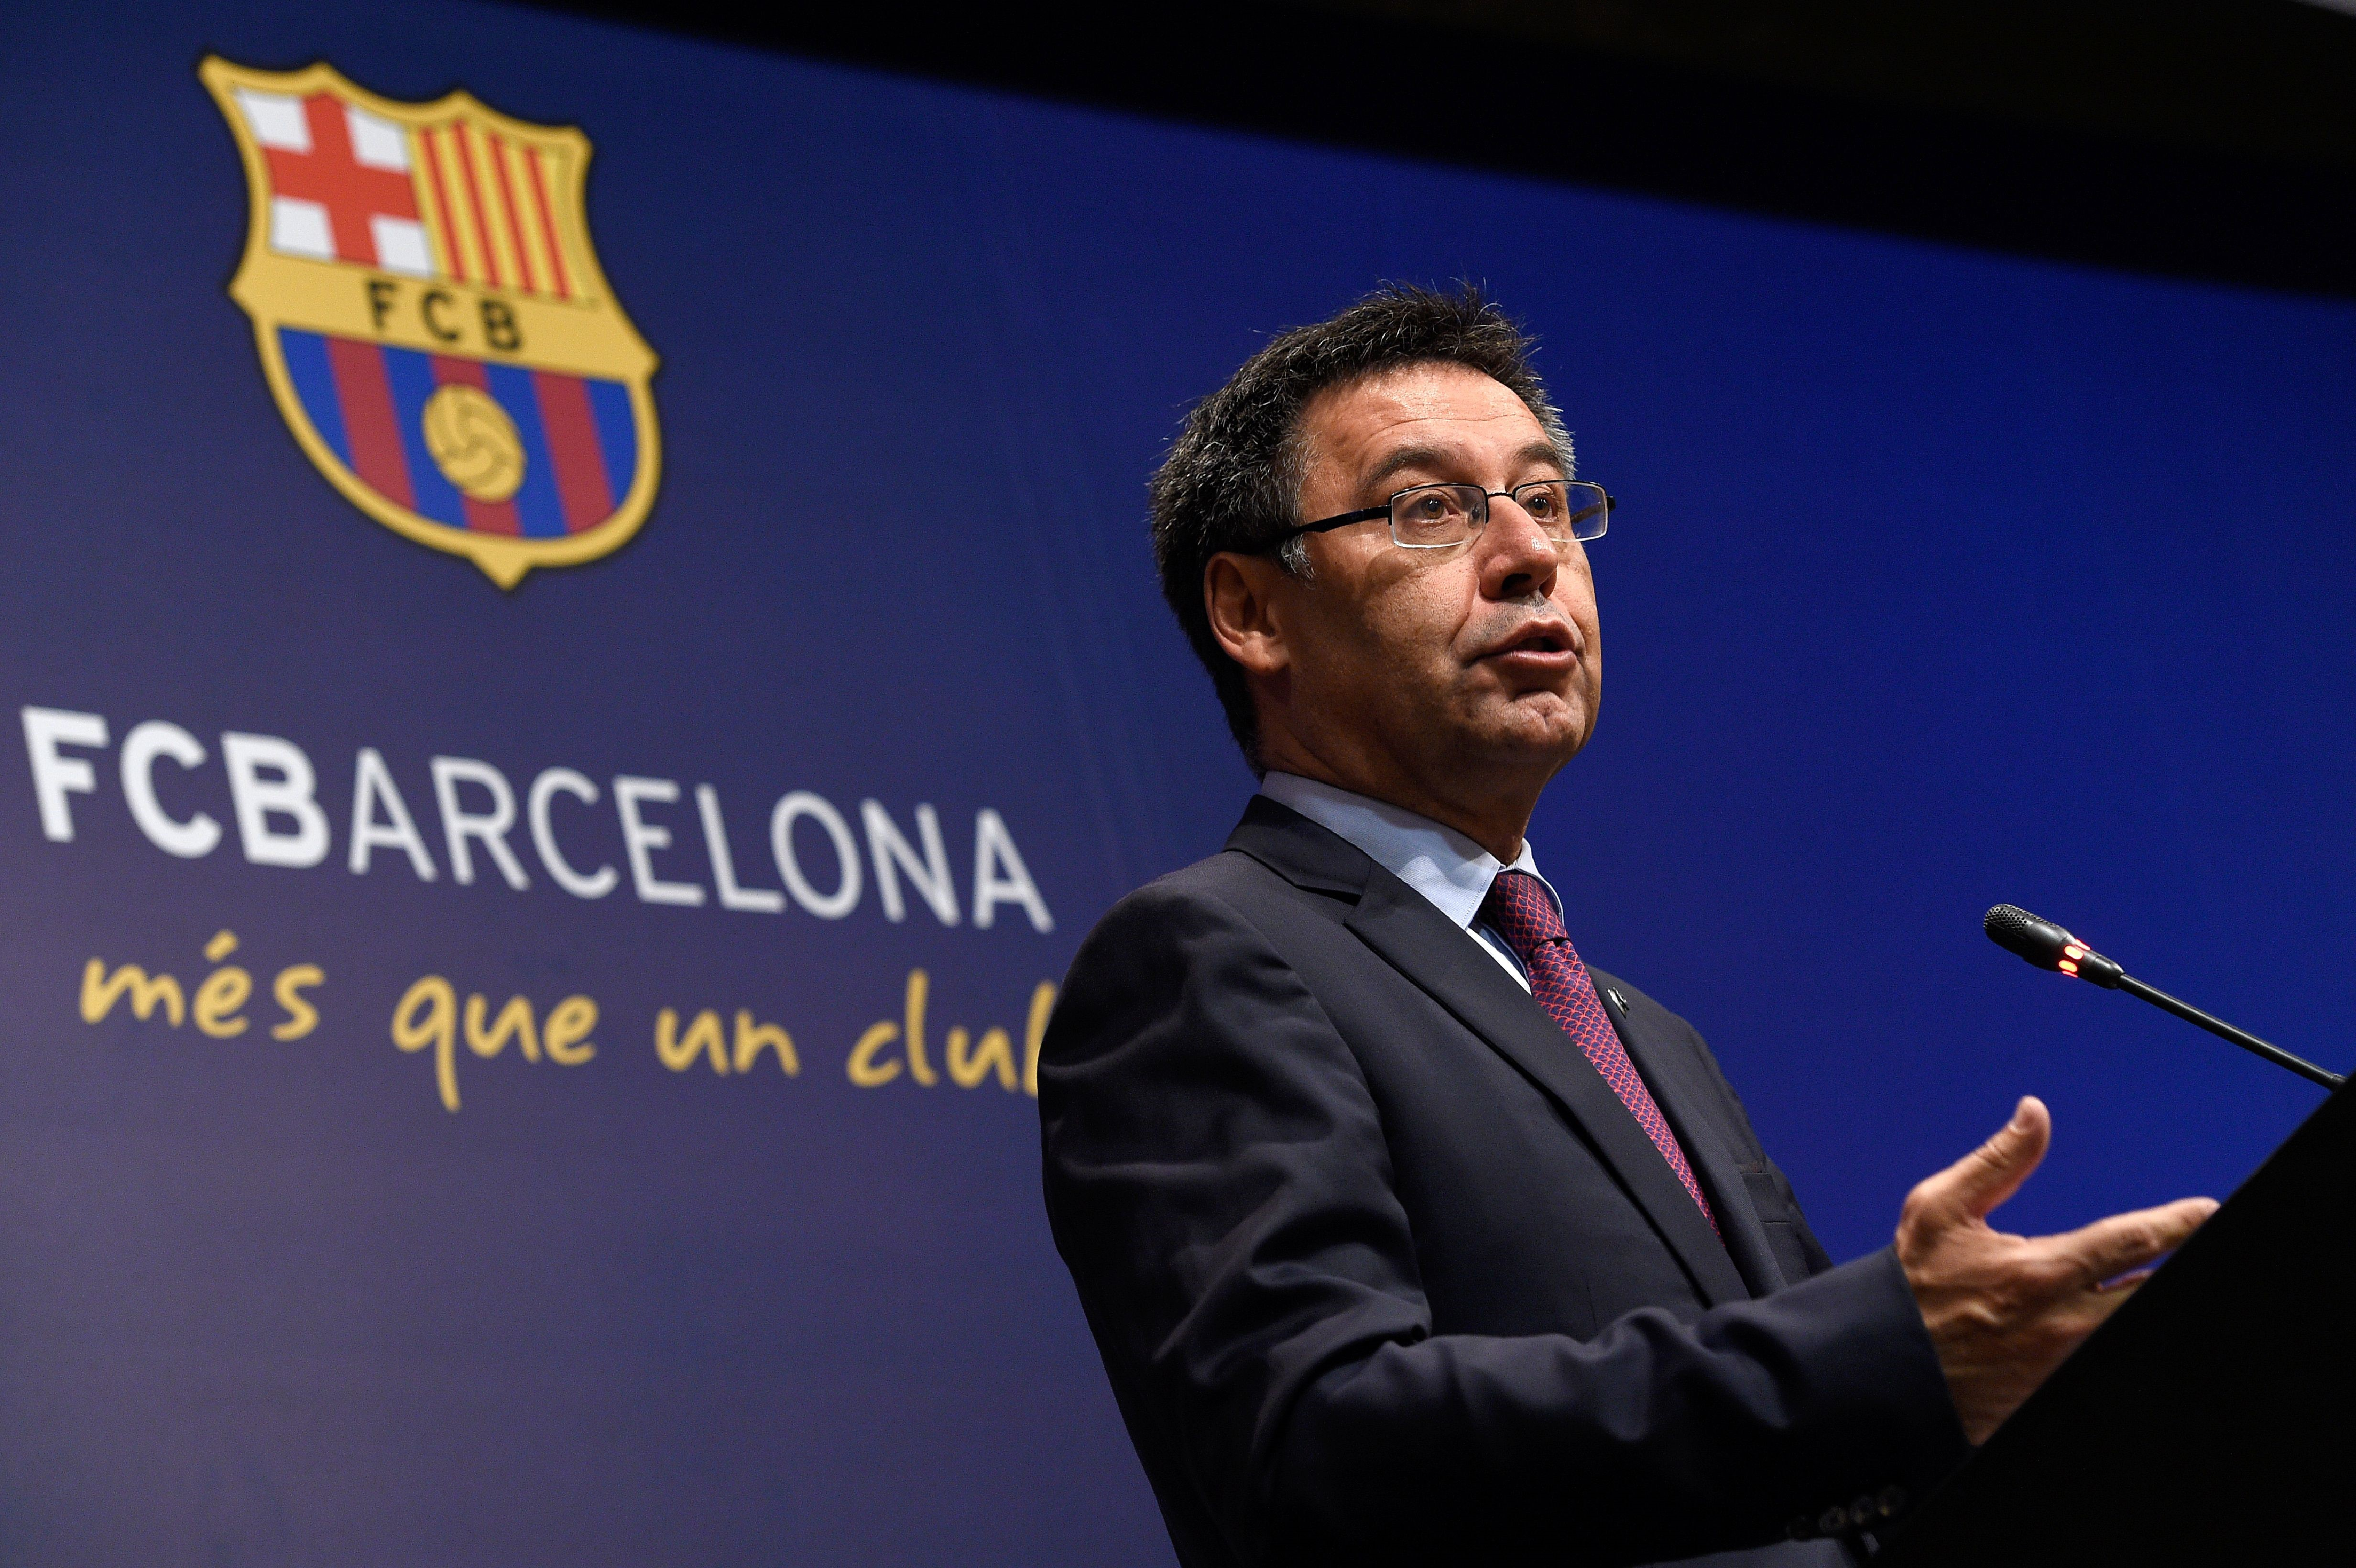 Barcelona's football club president Josep Maria Bartomeu speaks during a press conference